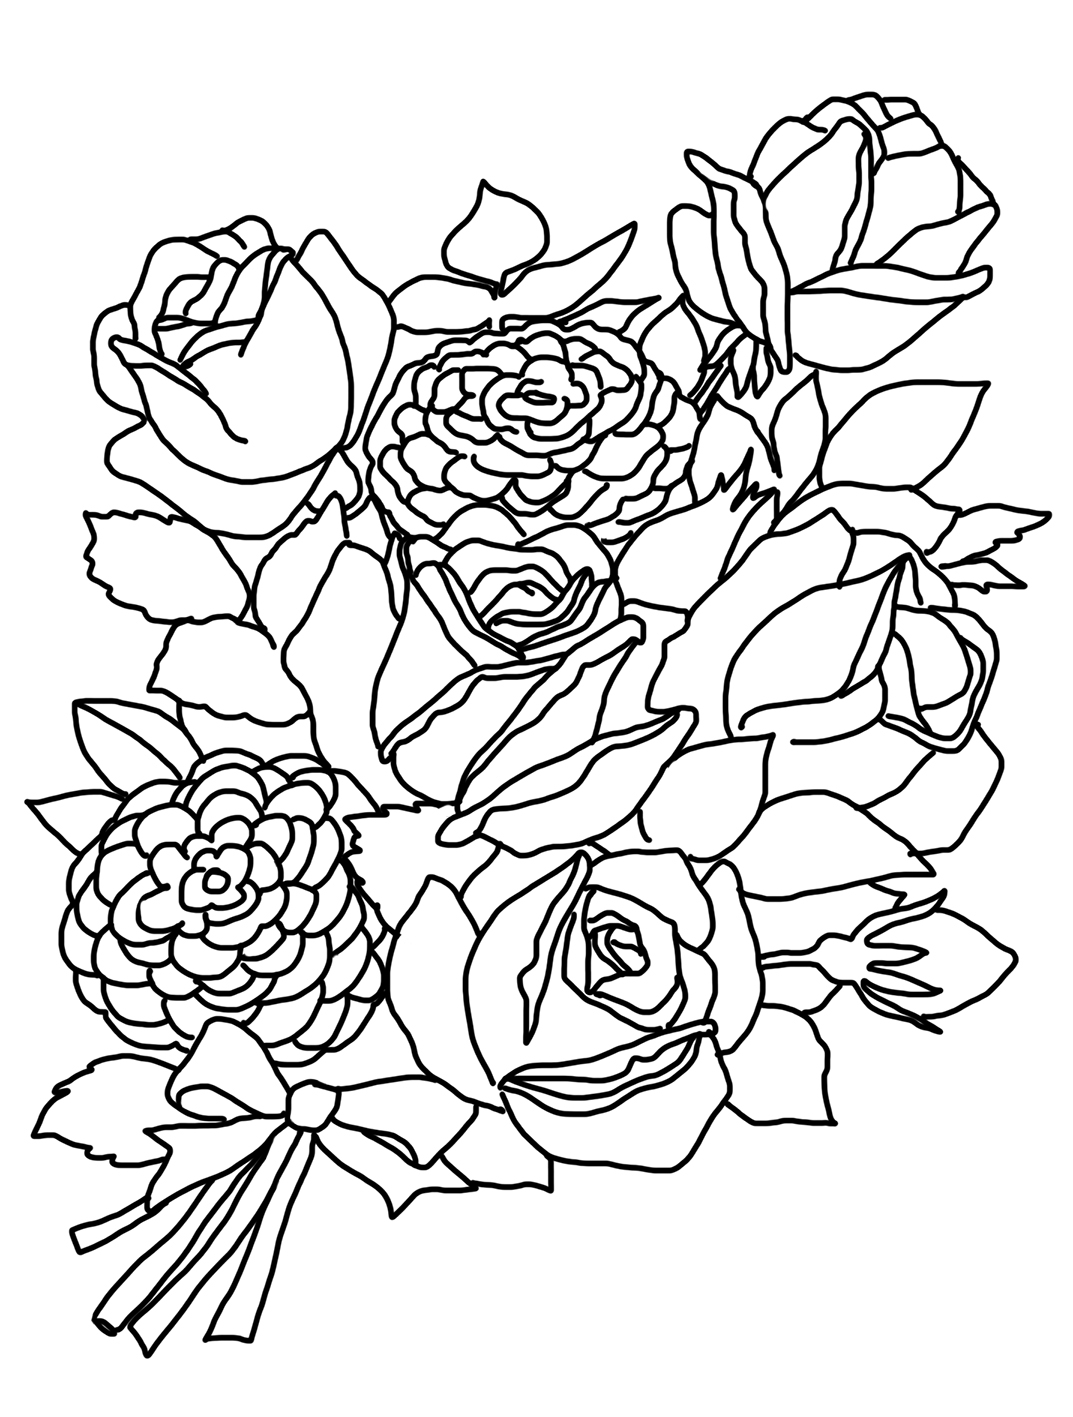 a coloring page of a rose roses flower coloring pages flower coloring pages free a page rose a coloring of